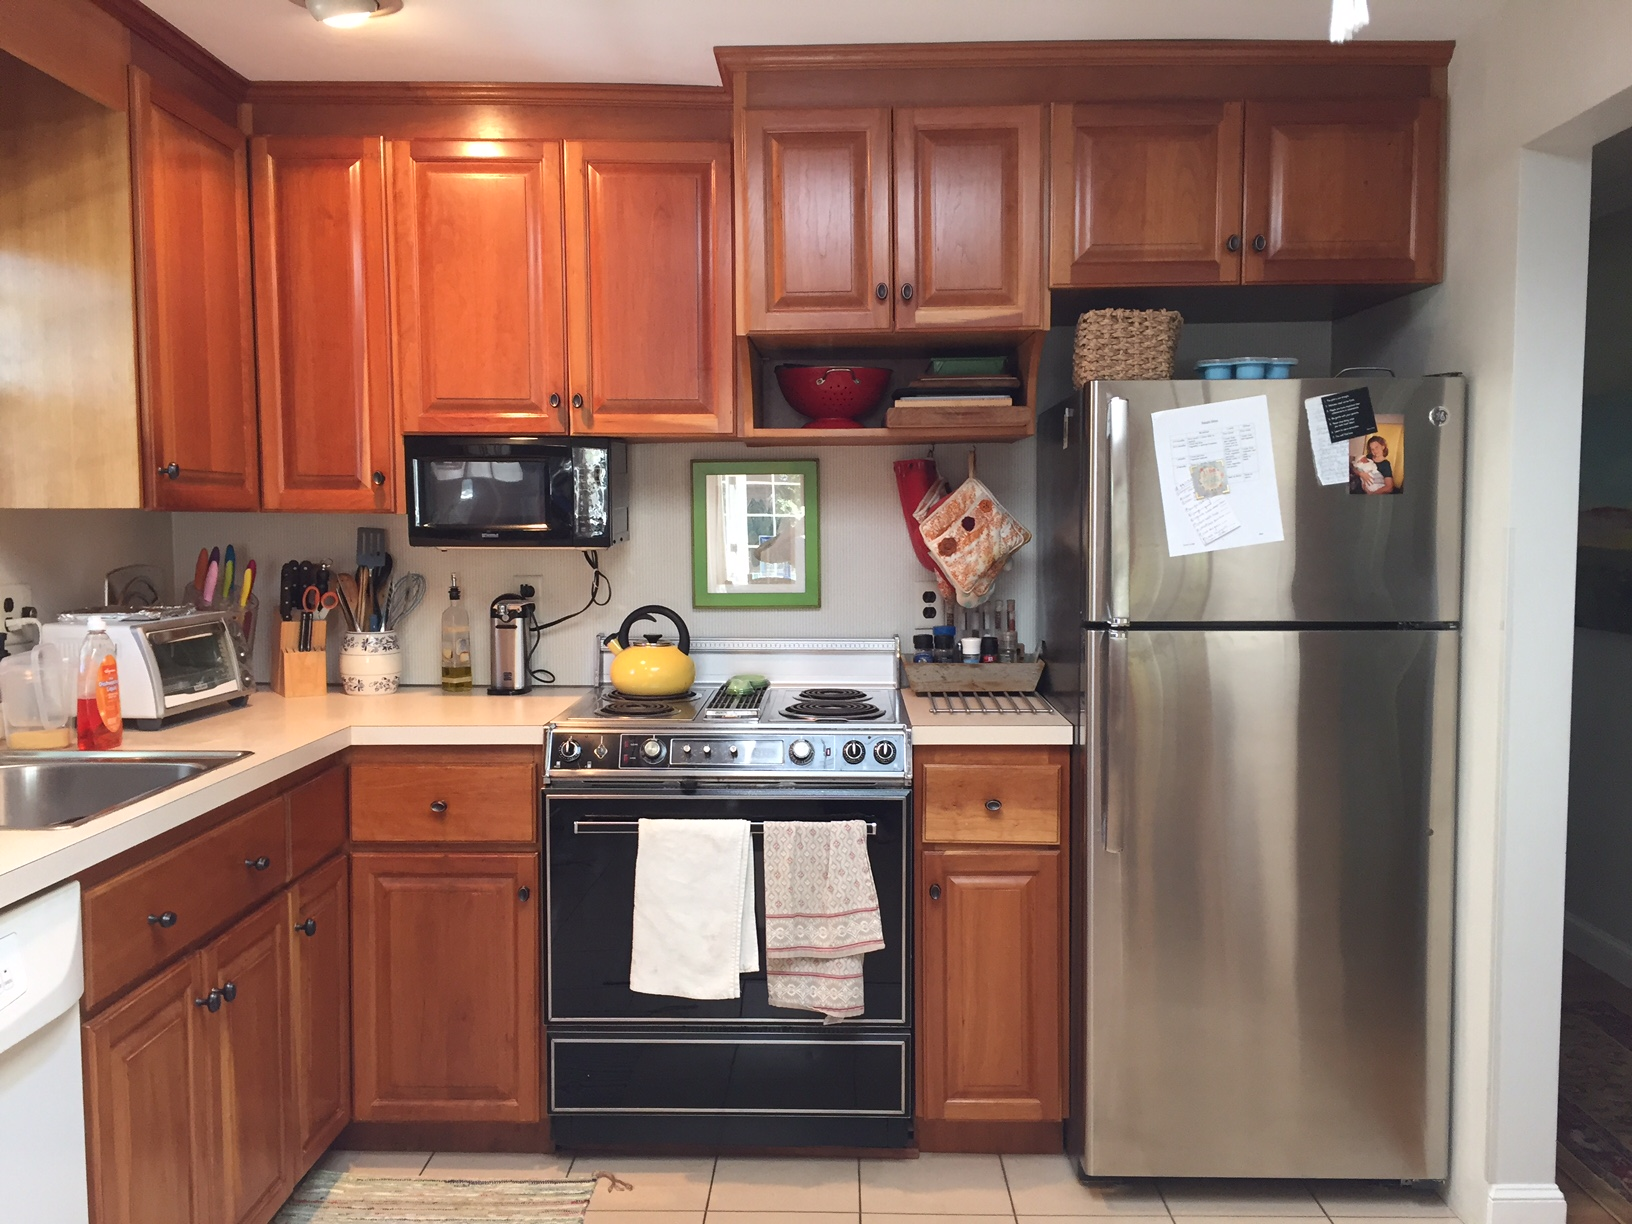 The layout of the kitchen was choppy with little work space and no cooking flow at all....